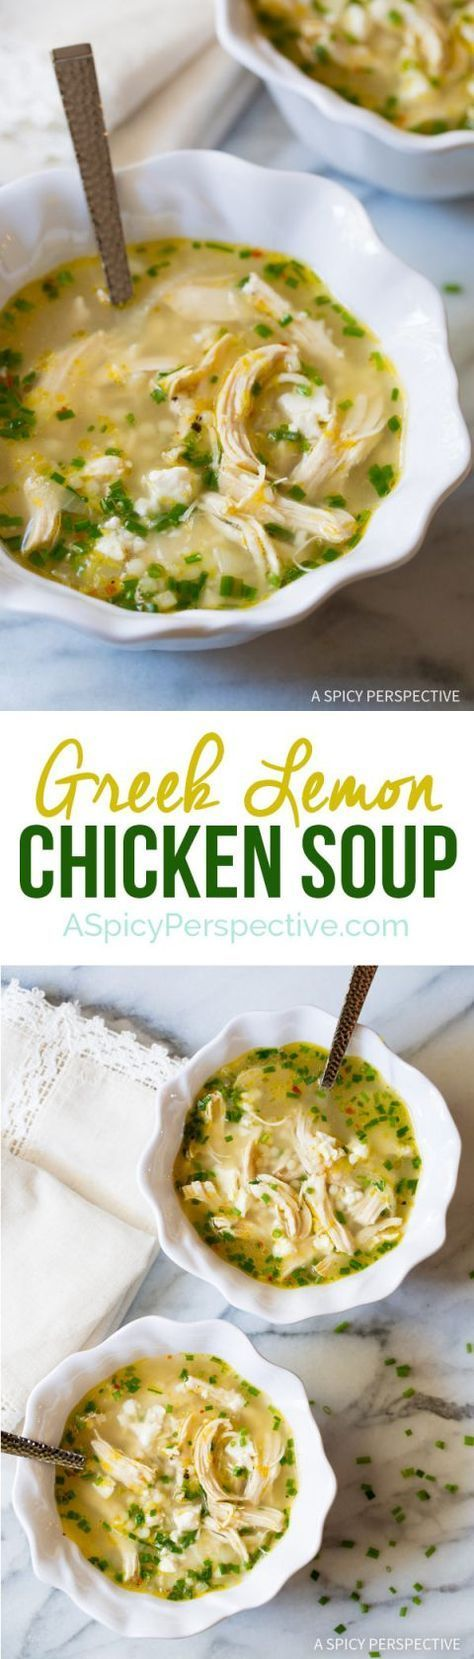 Just crazy over this Healthy Greek Lemon Chicken Soup Recipe on ASpicyPerspective...